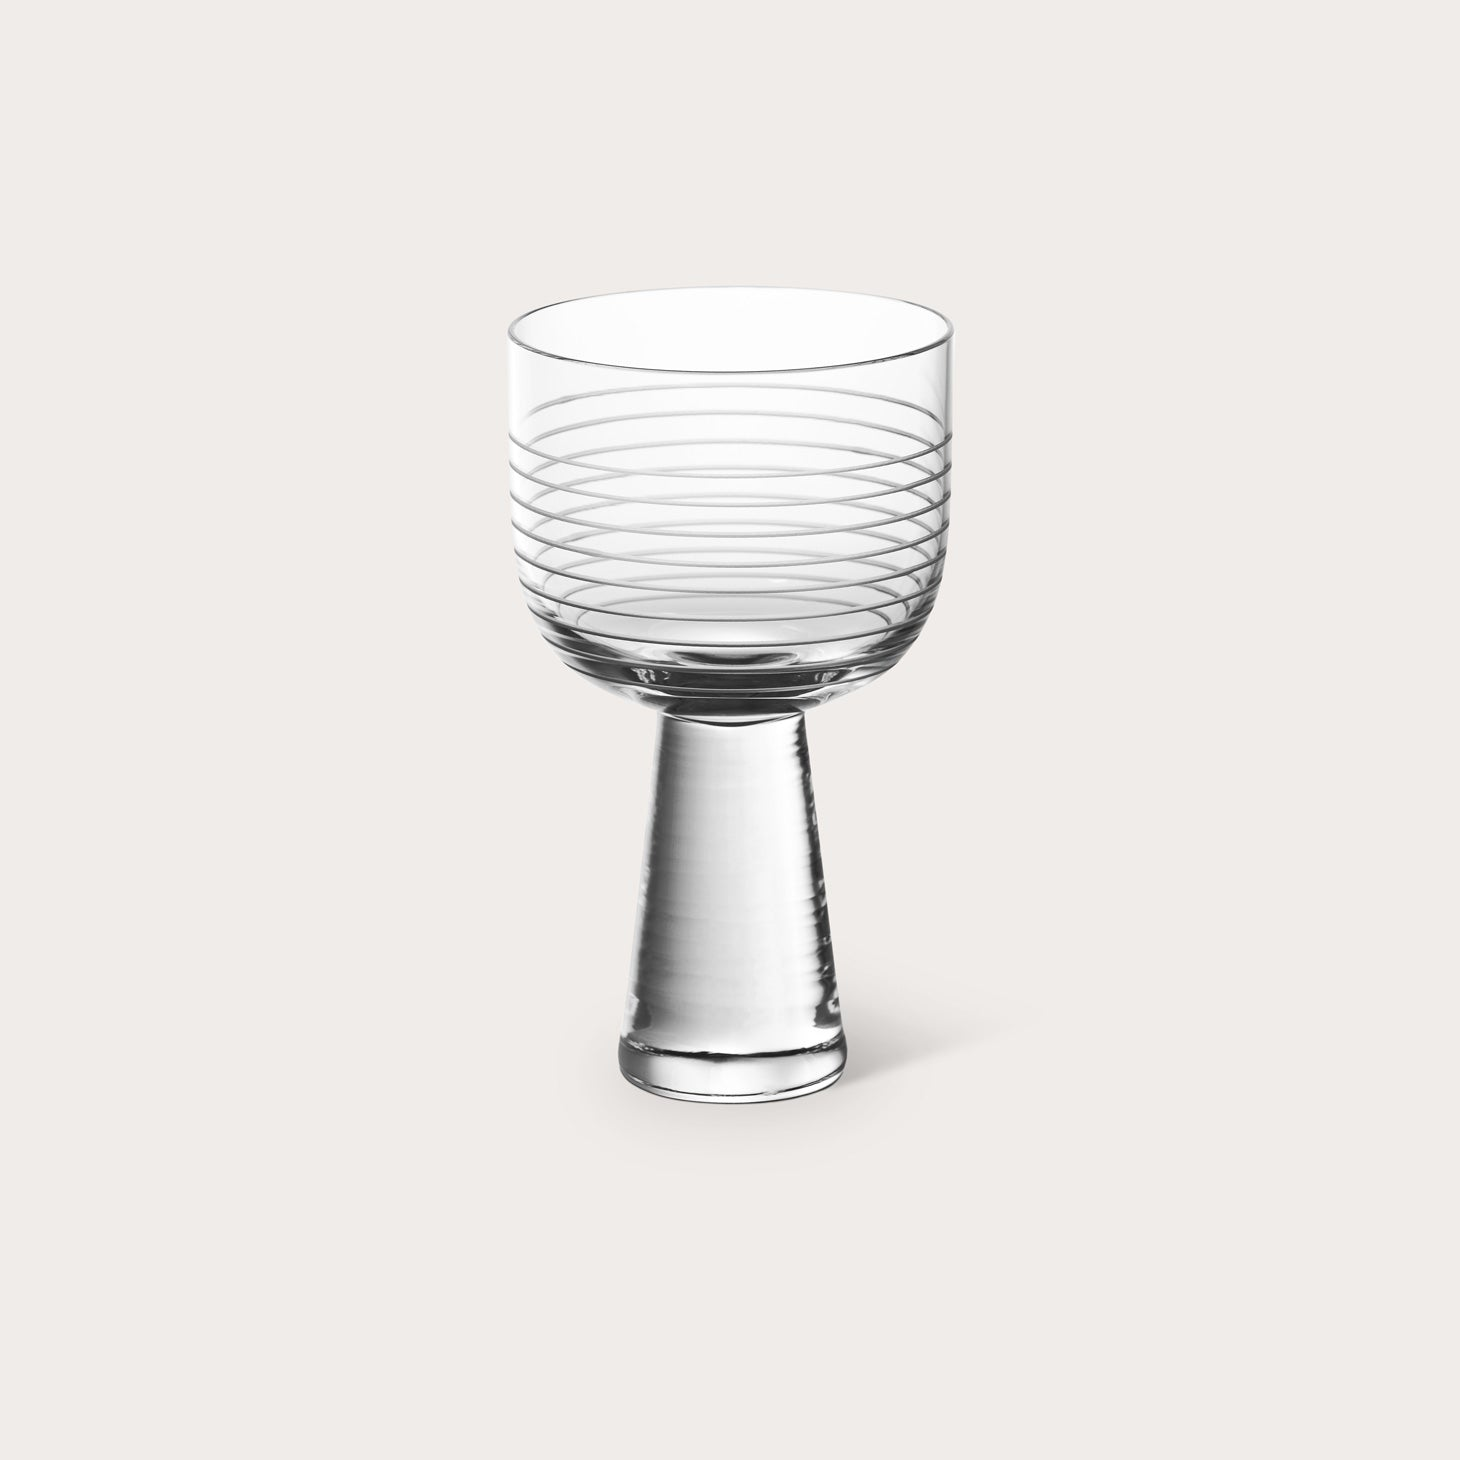 Otto Red Wine Glass Set of 2 Accessories Yabu Pushelberg Designer Furniture Sku: 110-100-10009